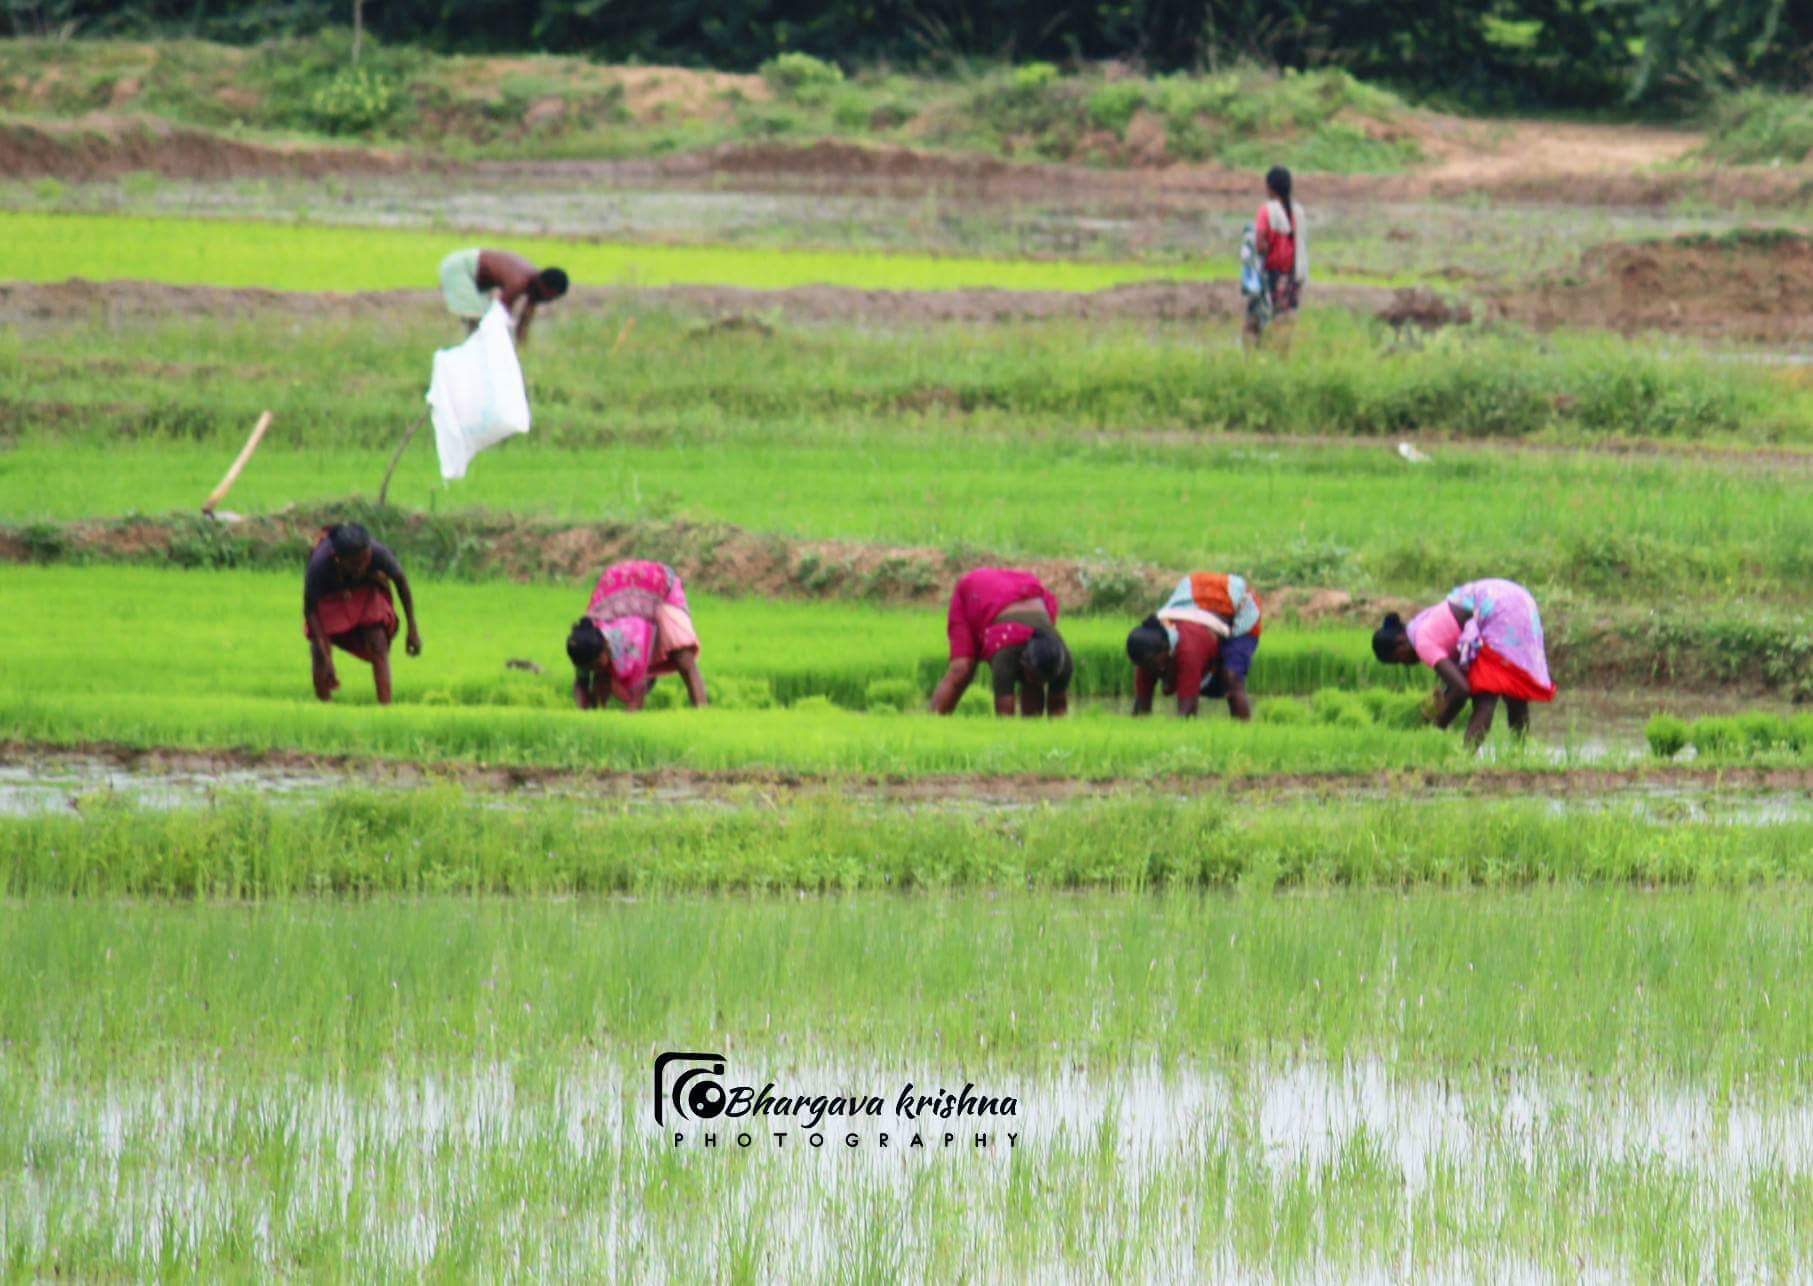 Farmers day income Women farmers suffering Agriculture India